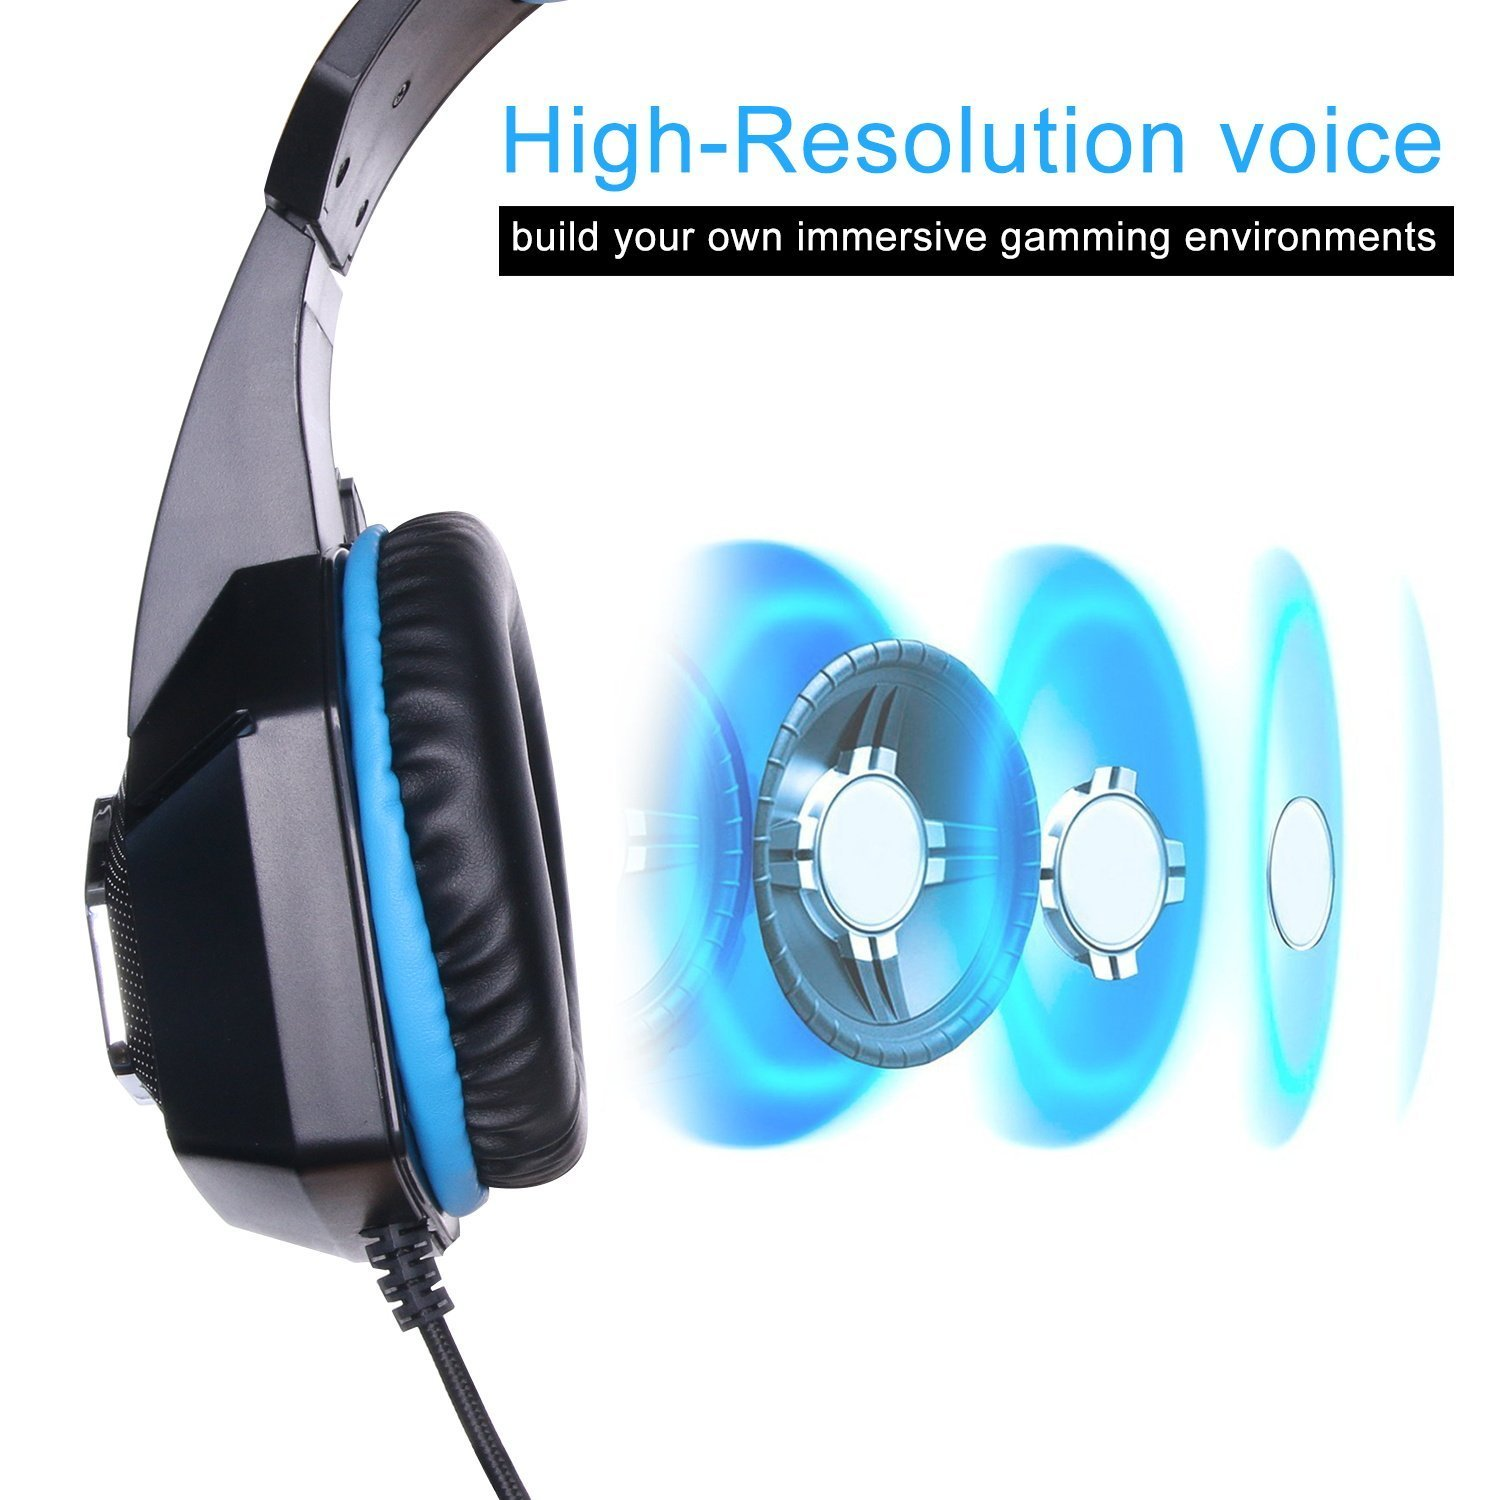 Fuleadture Gaming Headset for PS4 Xbox One, PC Gaming Headset with Mic, Noise Cancelling Over Ear Headphones with LED Light, Bass Surround, Soft Memory Earmuffs for Laptop Mac Nintendo Switch Games by Fuleadture (Image #2)